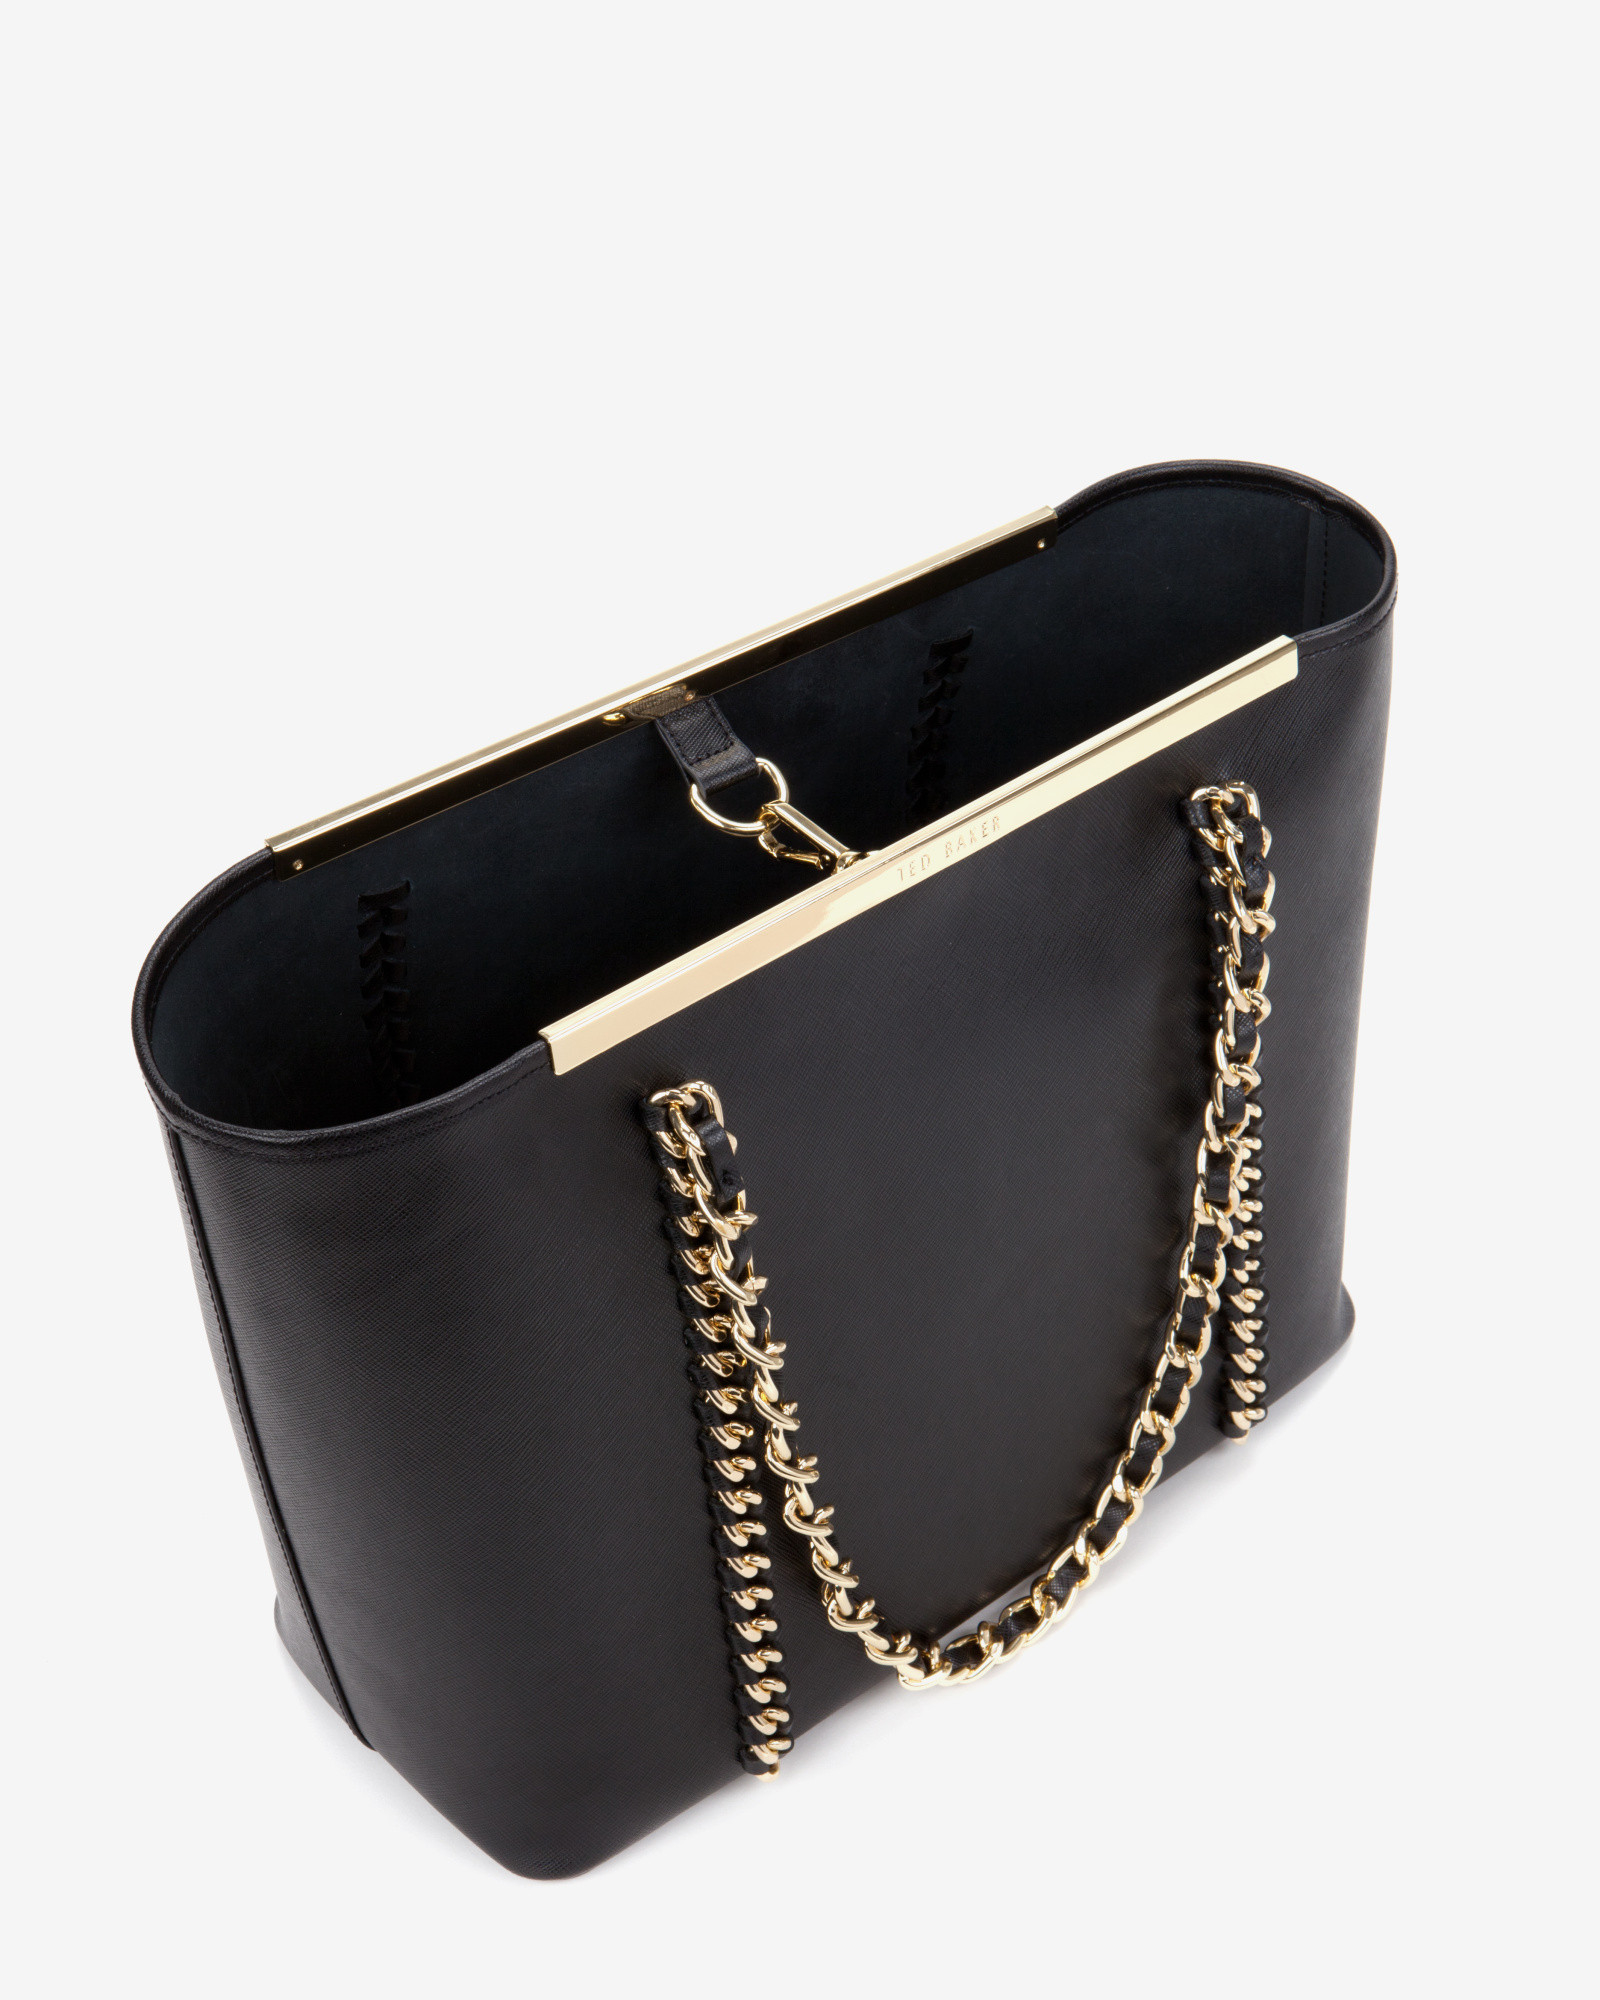 aff86ccb32c Ted Baker Metal Chain Shopper Bag in Black - Lyst